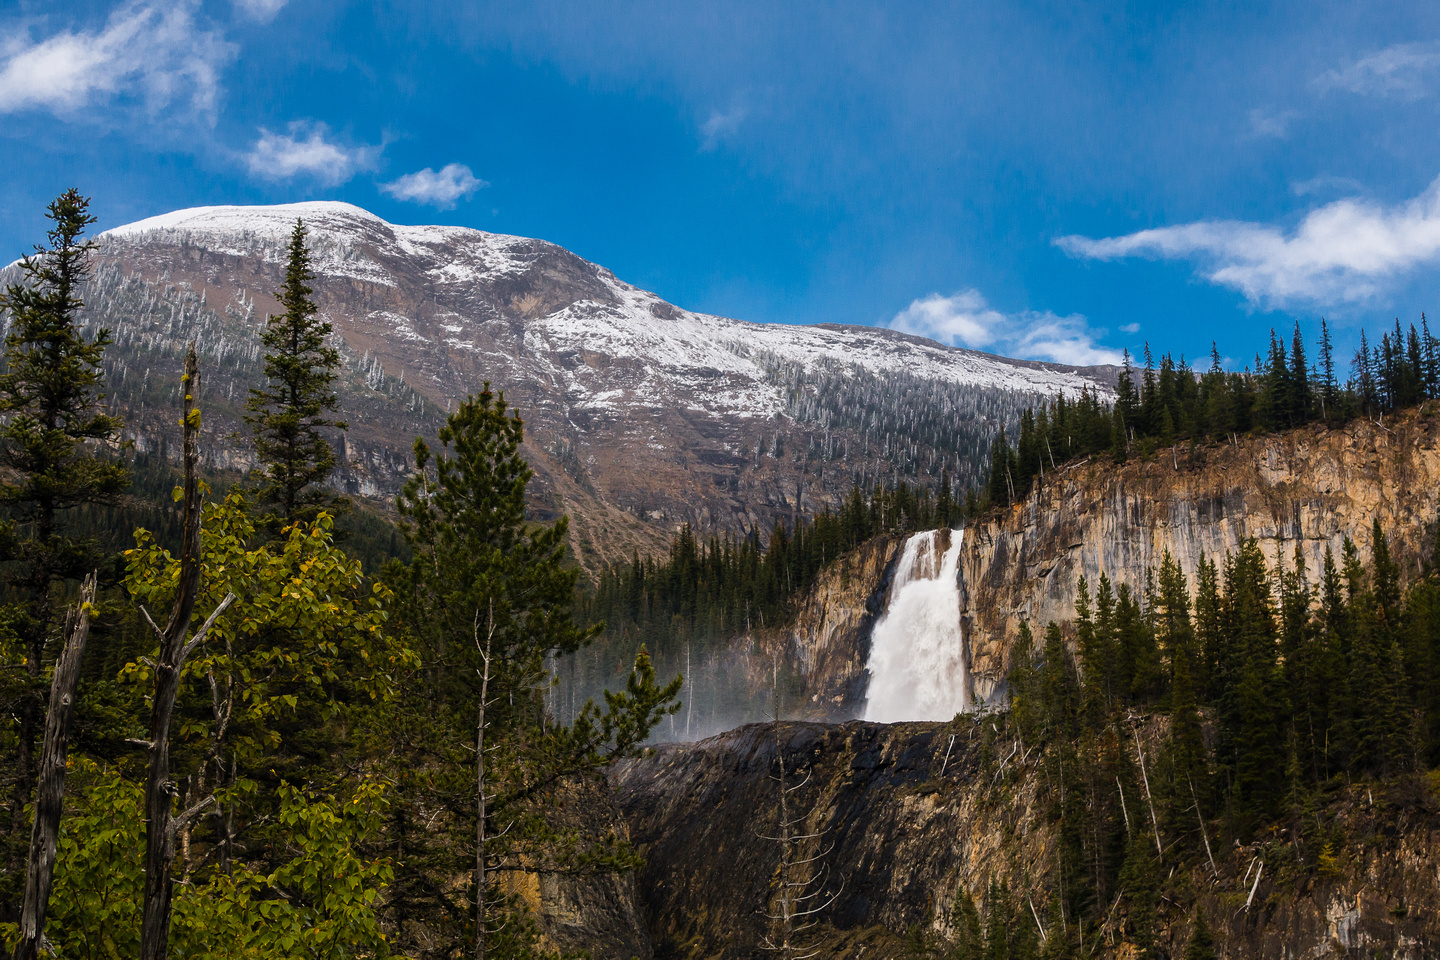 Emperor Falls plunges into the channel that is high above the valley that the Robson River must have run down previously